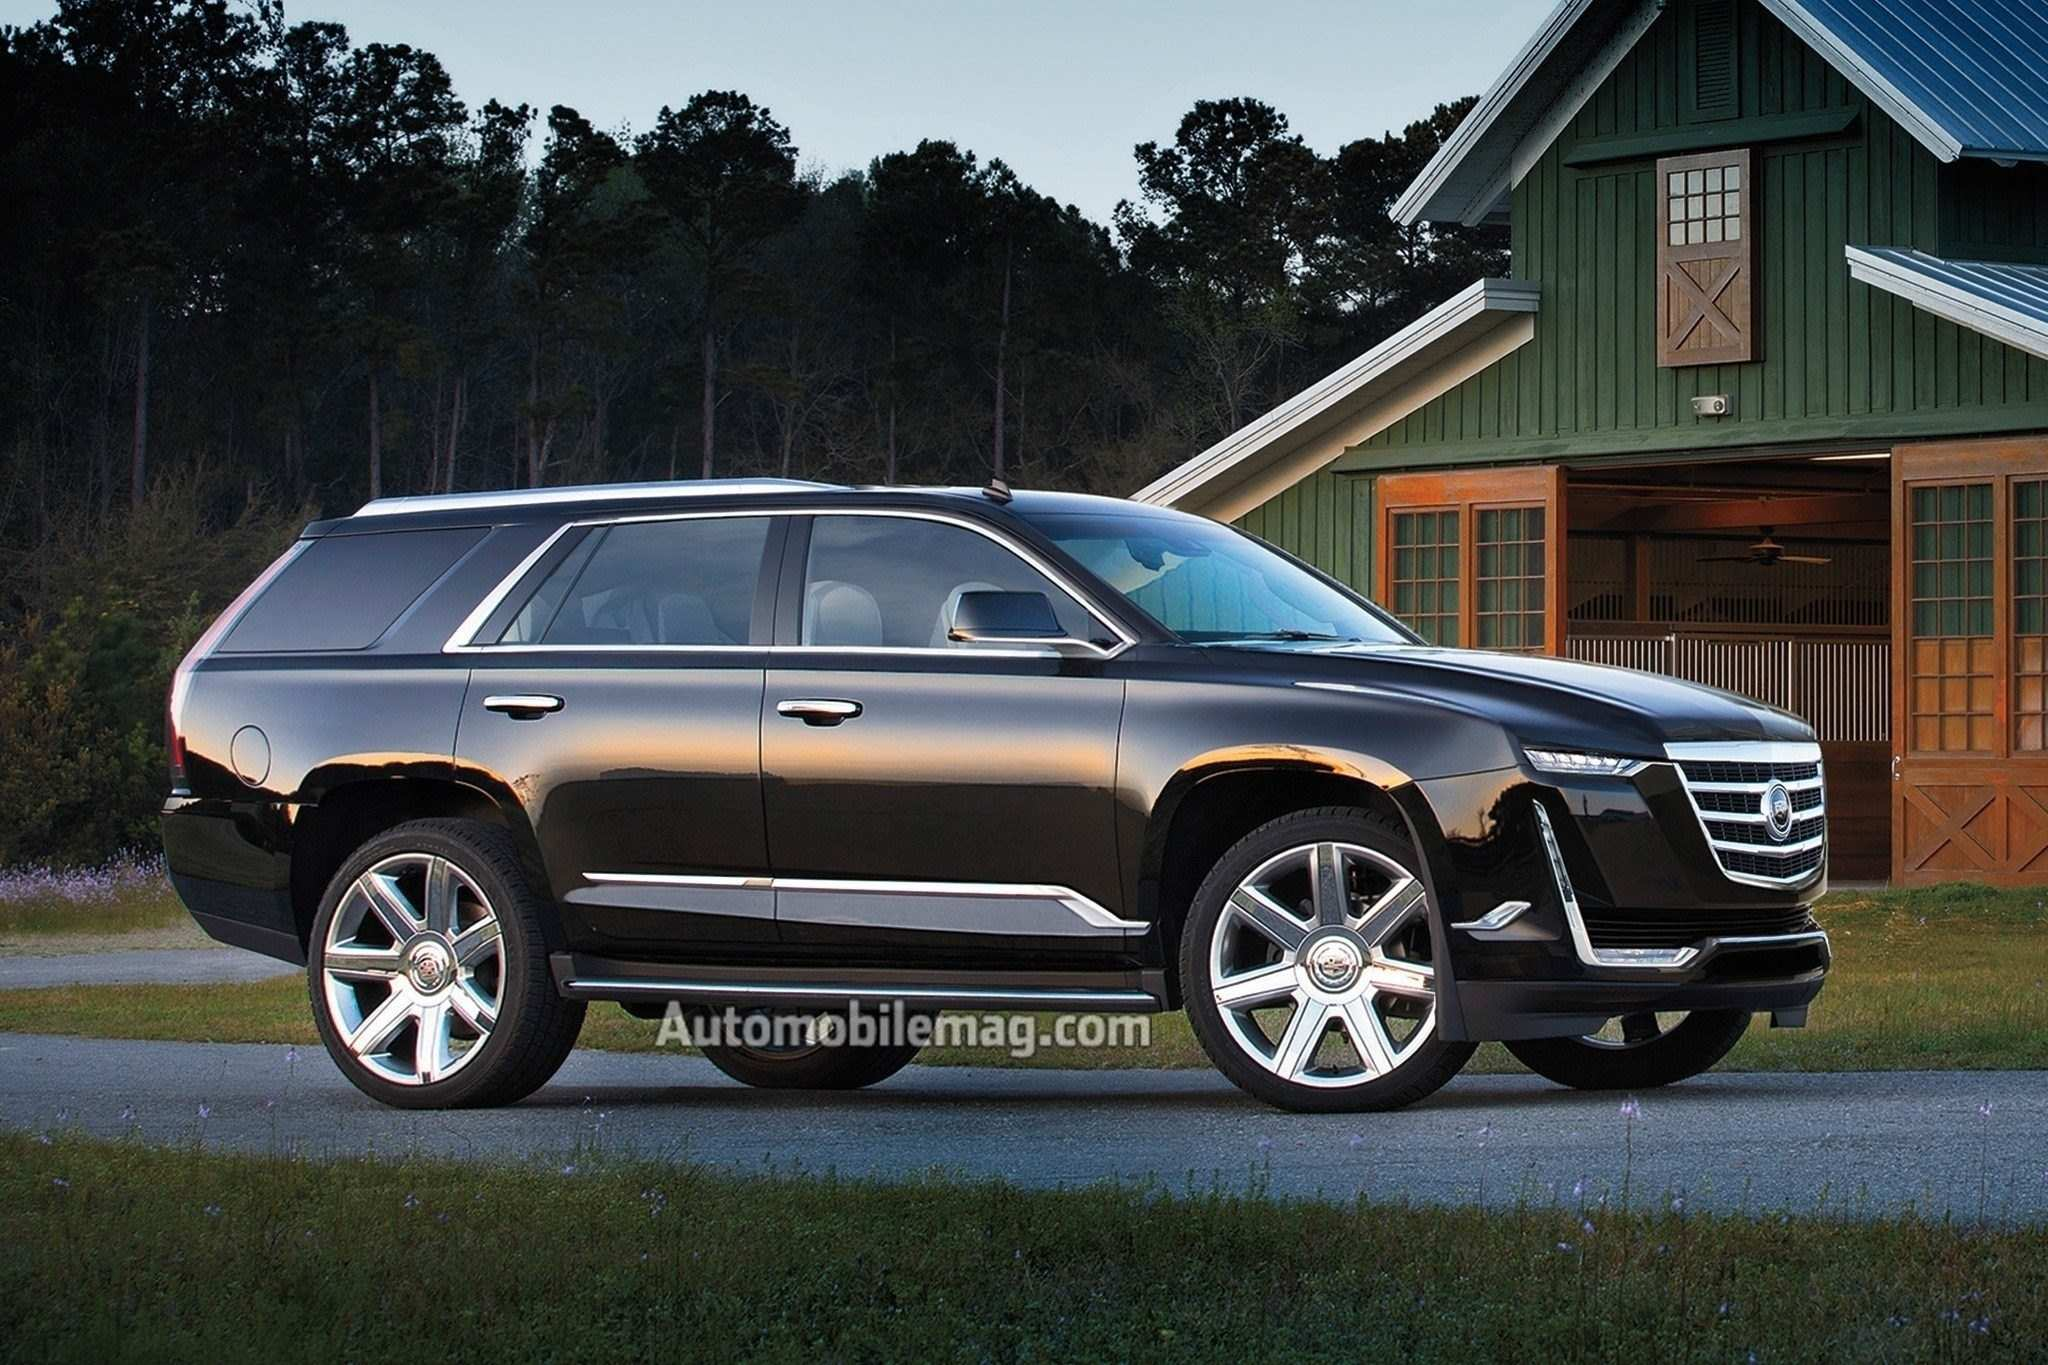 17 Concept of 2020 Chevrolet Tahoe Lt Release for 2020 Chevrolet Tahoe Lt